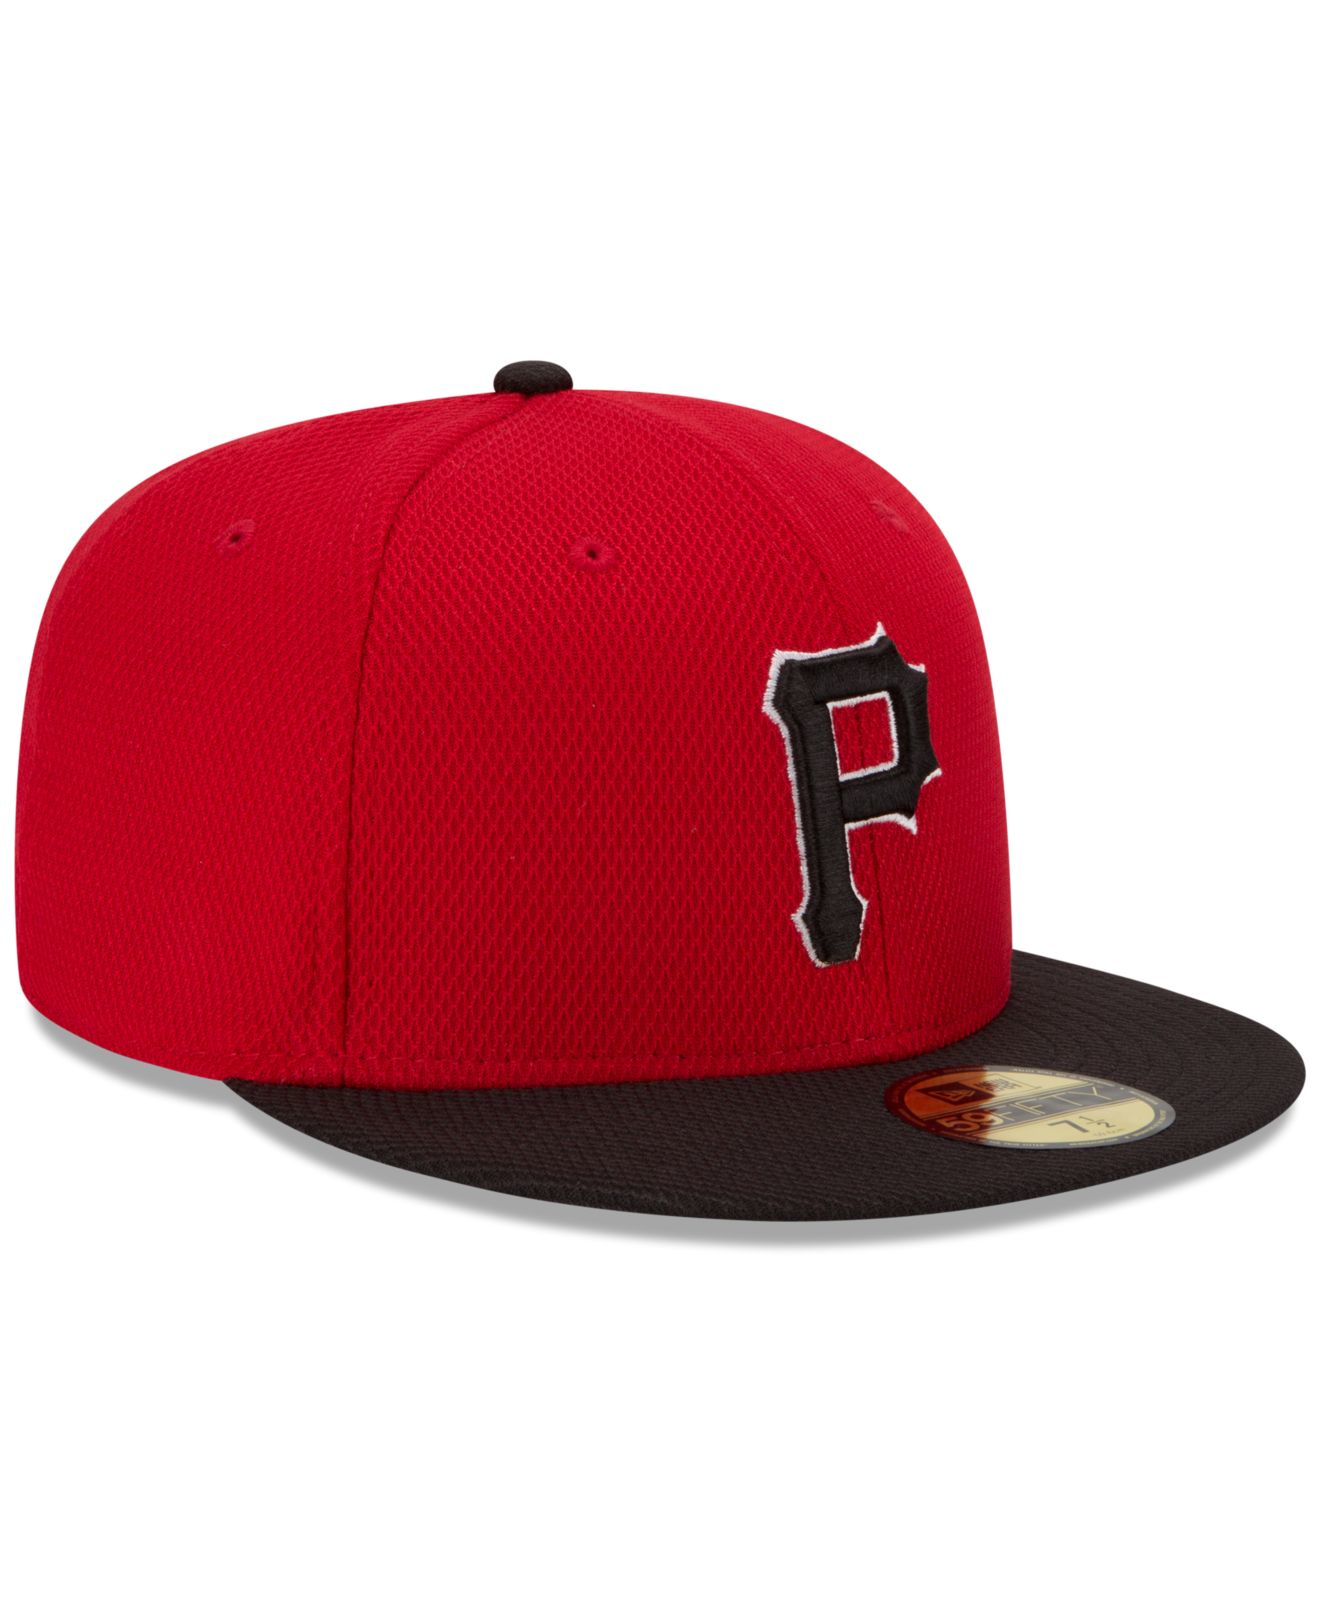 36df0fccf91 ... coupon code lyst ktz pittsburgh pirates 2016 home run derby 59fifty cap  in red b77bd ffcce ...